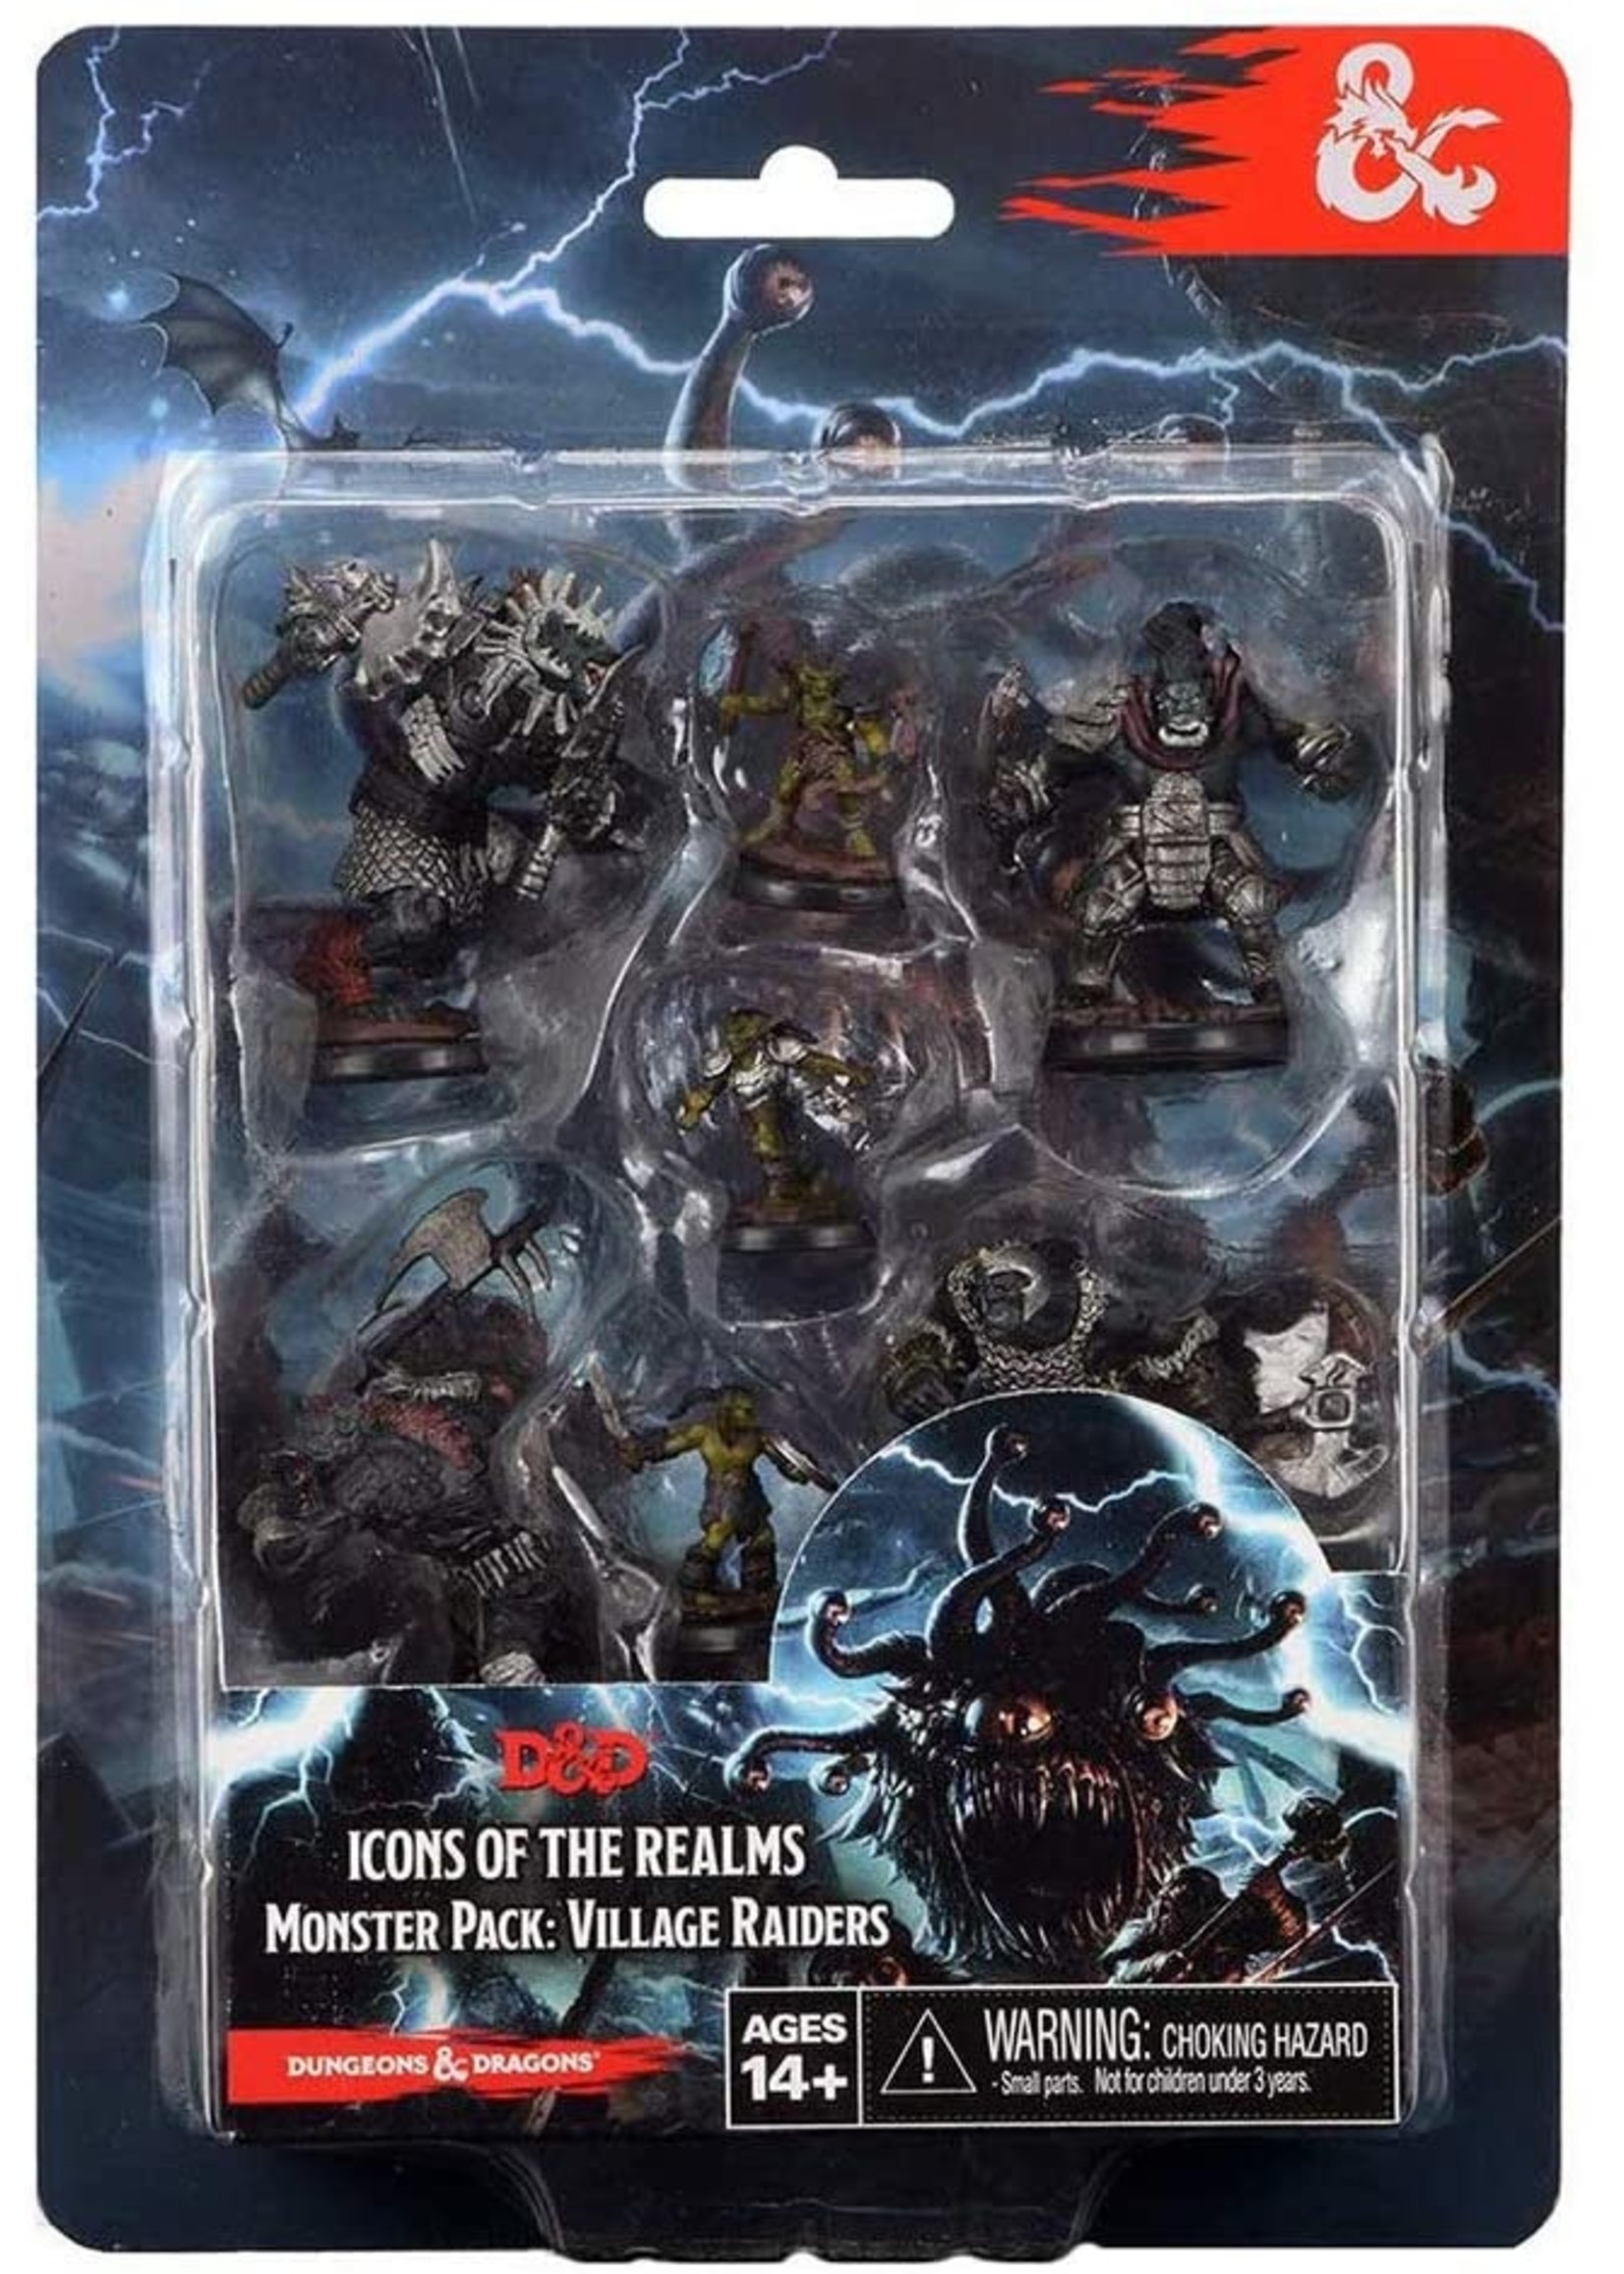 Dungeons & Dragons Fantasy Miniatures: Icons of the Realms Monster Pack - Village Raiders